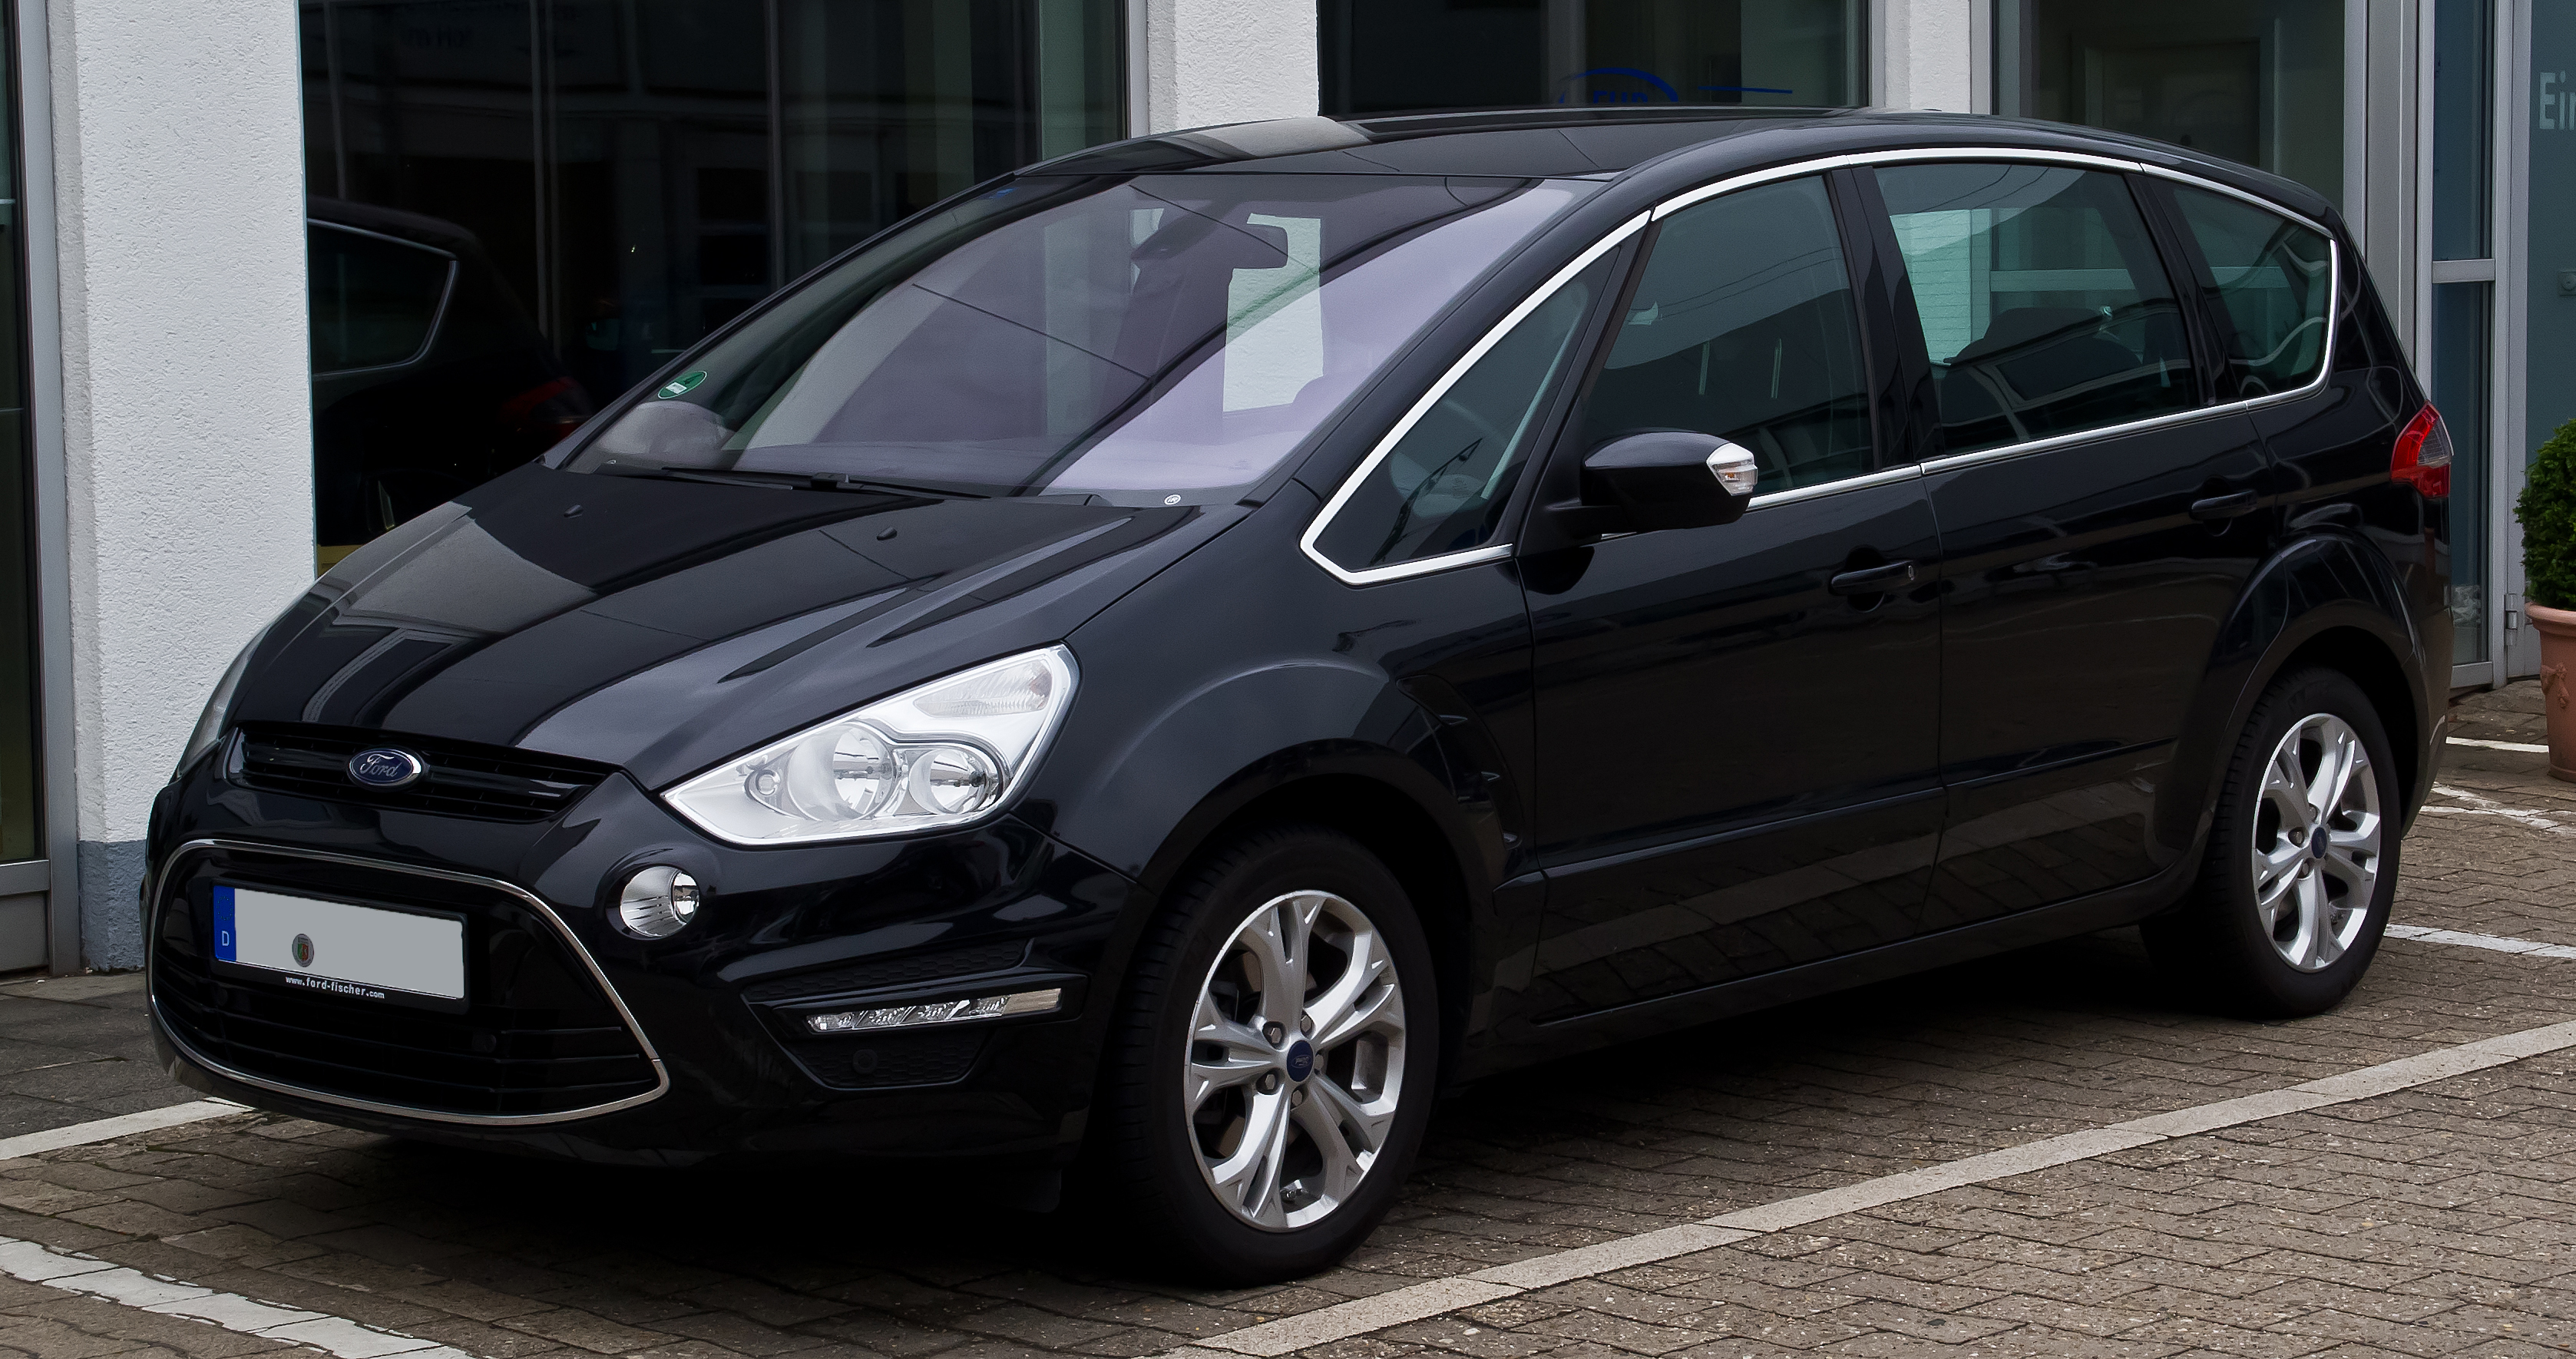 File:Ford S-Max 1.6 EcoBoost Titanium (Facelift) – Frontansicht, 7 ...